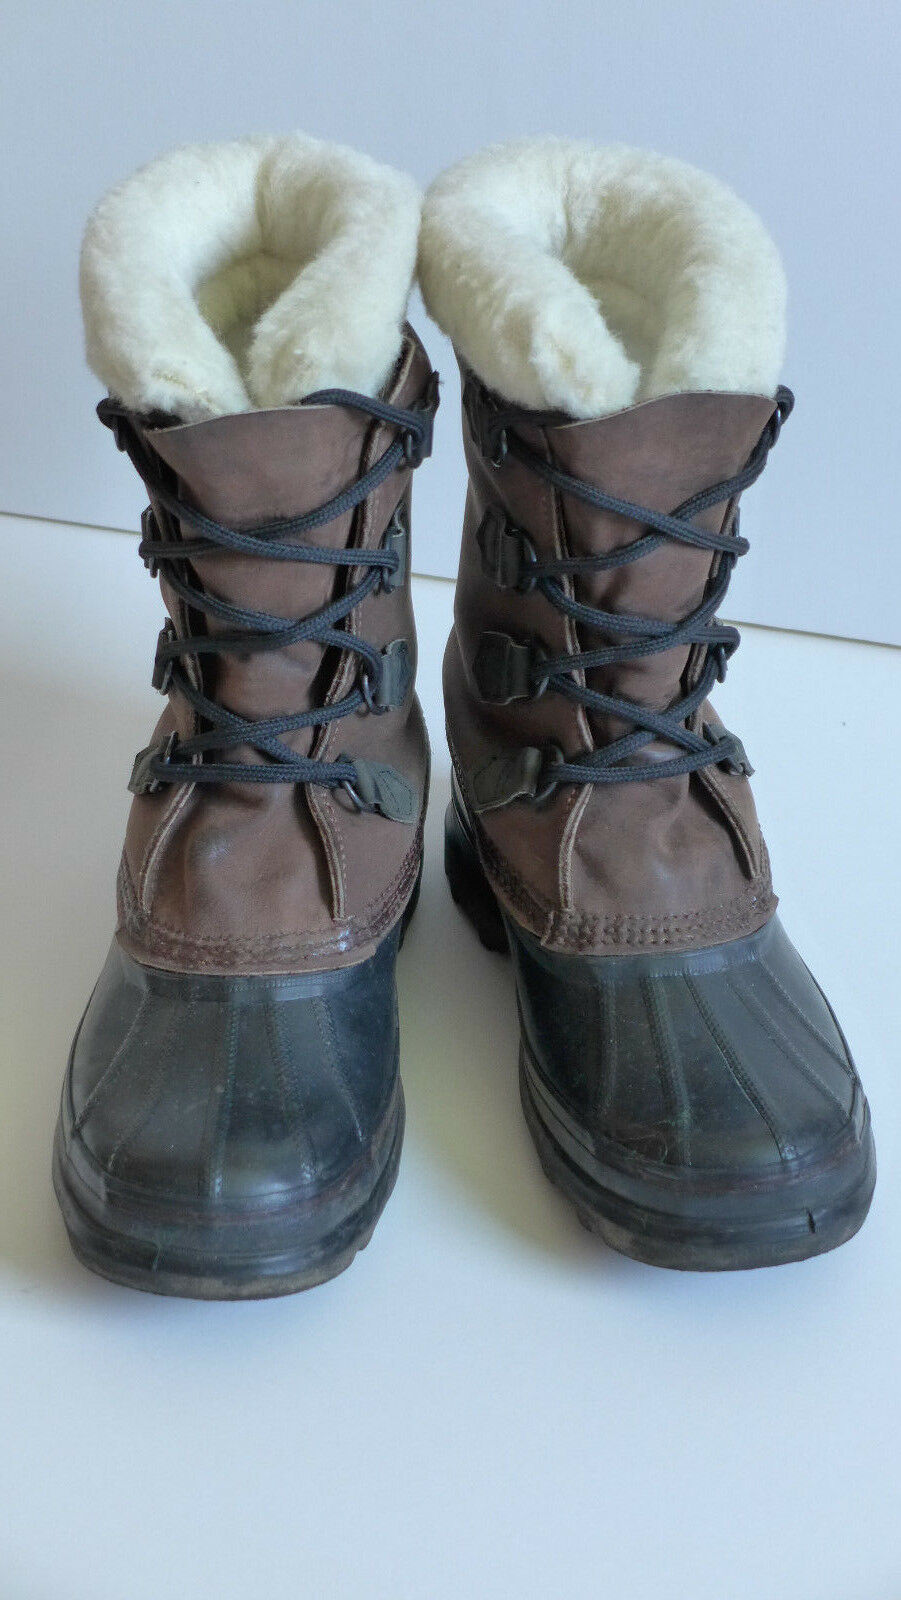 Sorel Bighorn Leder Winterstiefel Gr. US 7 made in Canada